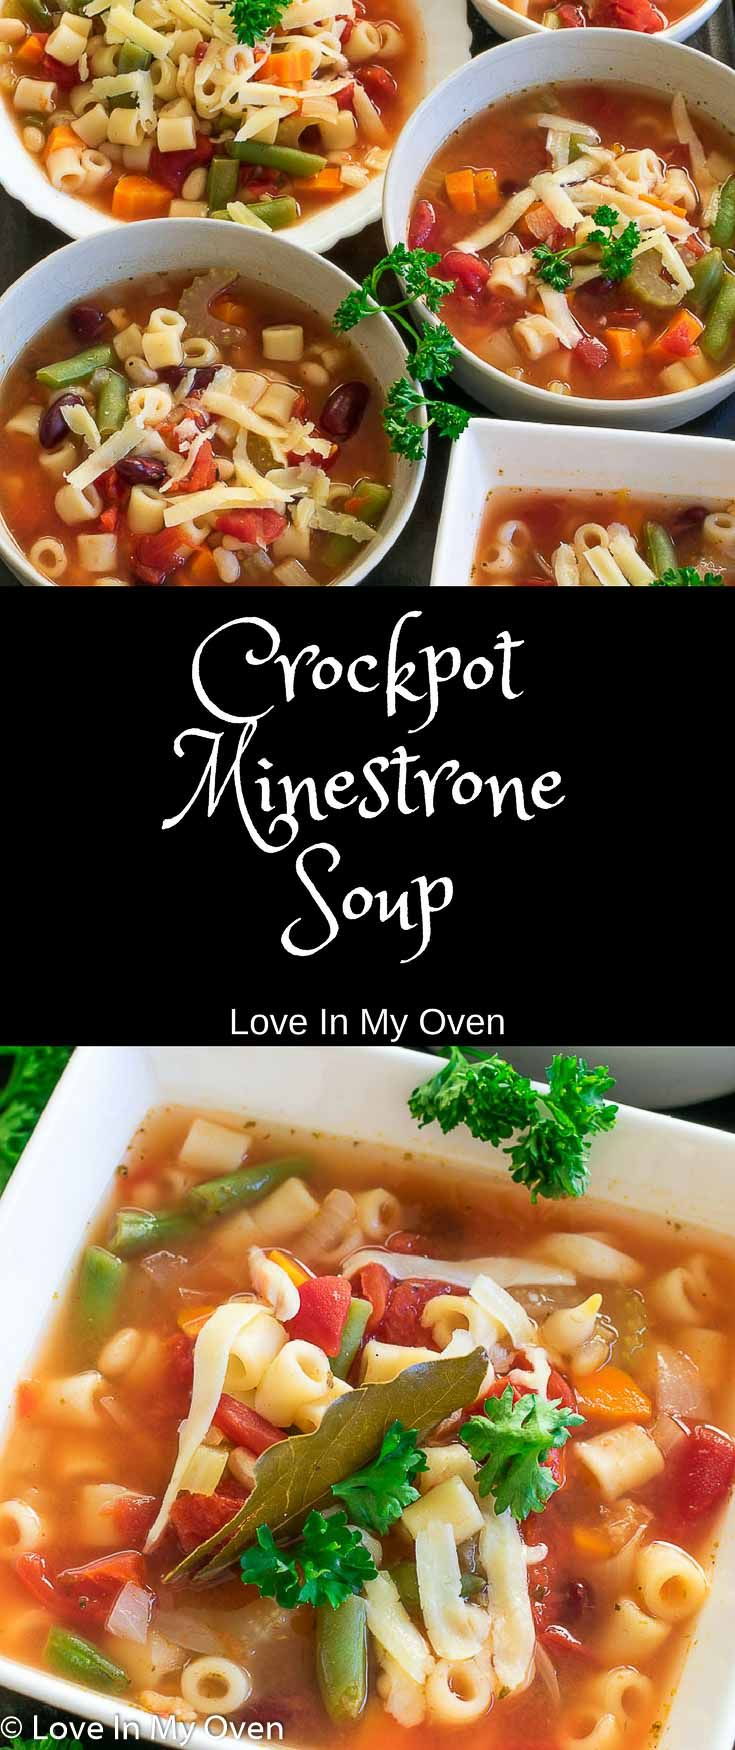 Skip the can and try this super easy dump-and-go slow-cooker minestrone soup that is loaded with hearty, fiber-rich vegetables - it tastes amazing! Perfect for meatless Monday! via @loveinmyoven